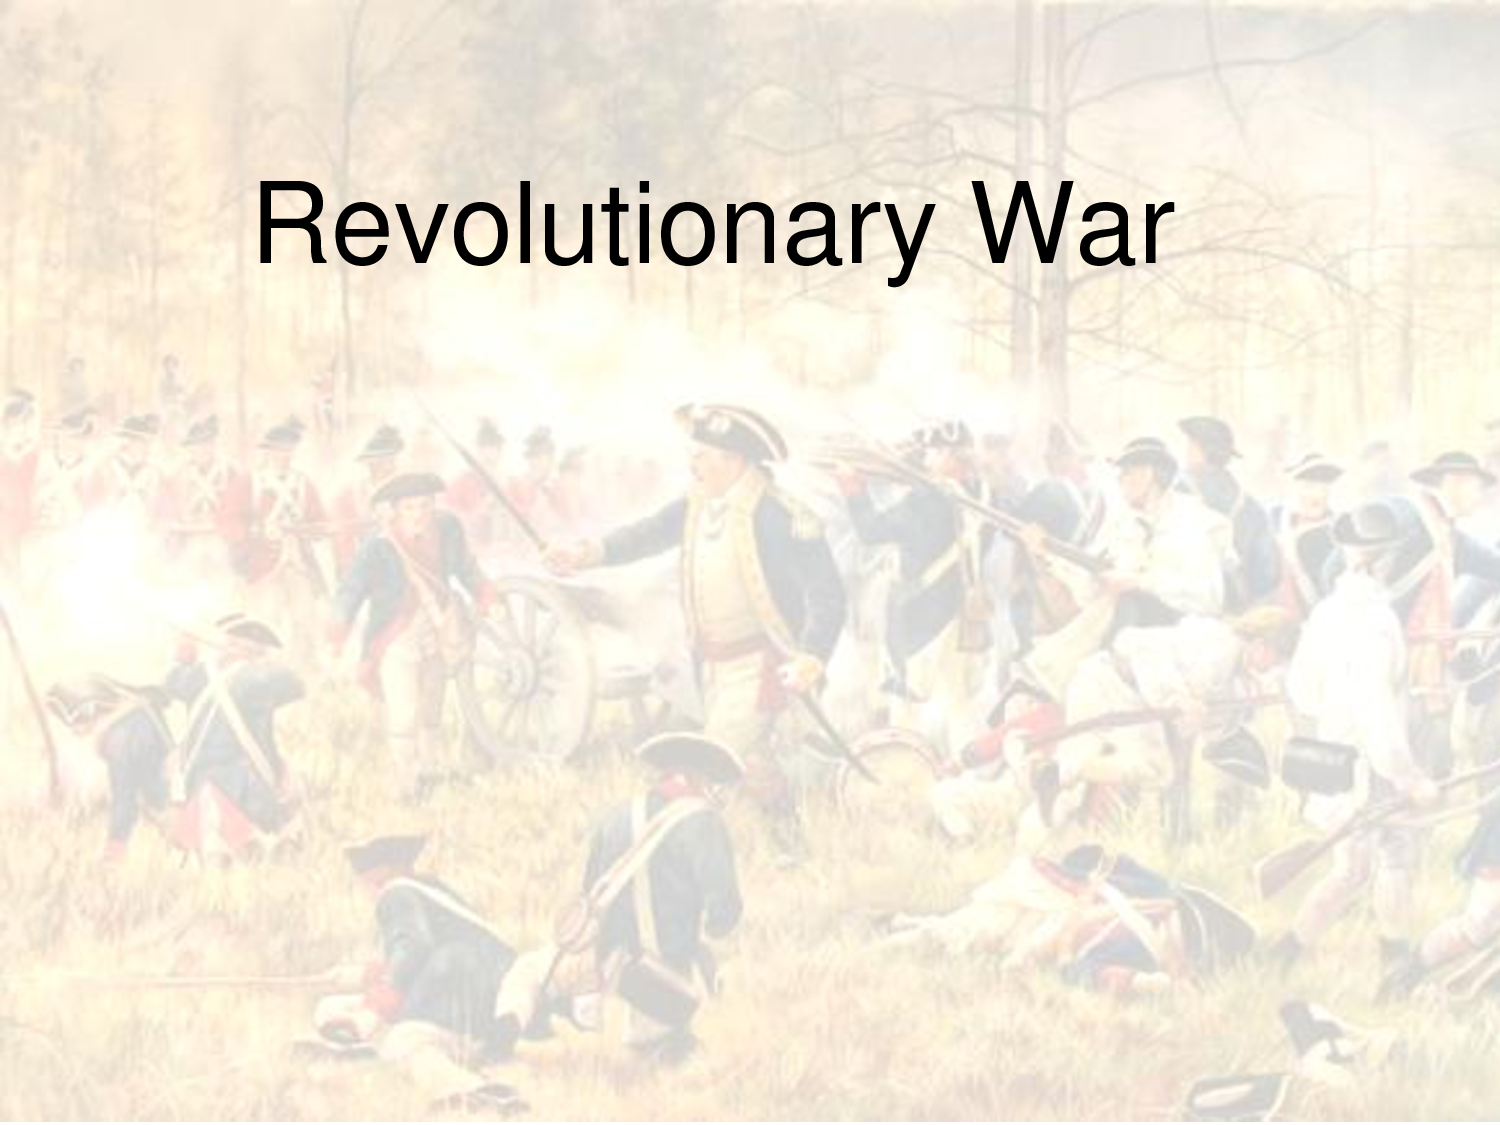 Revolutionary war american revolution by the numbers 8899717 this page contains all about revolutionary war american revolution by the numbers toneelgroepblik Image collections